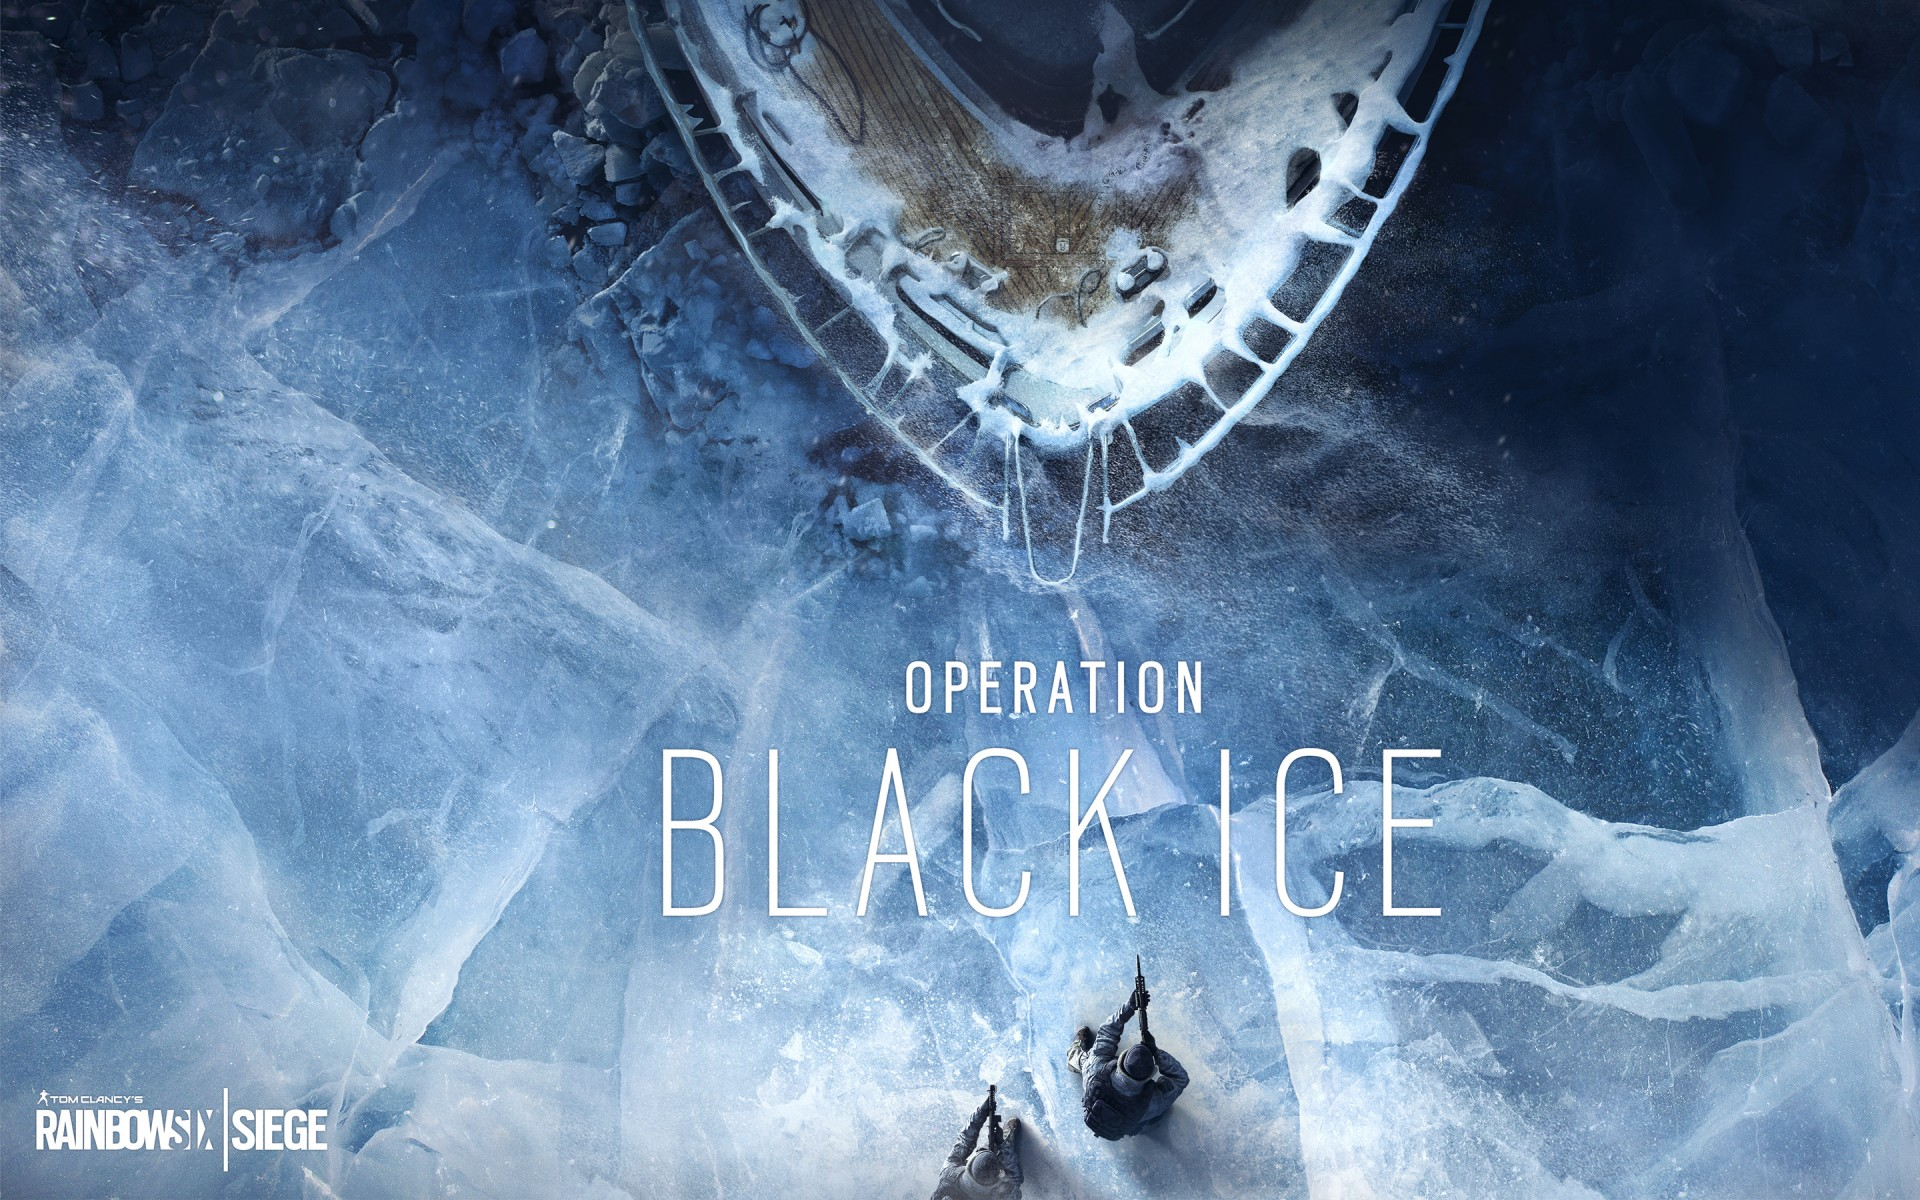 Cute Inspirational Iphone Wallpapers Rainbow Six Siege Operation Black Ice Wallpapers Hd